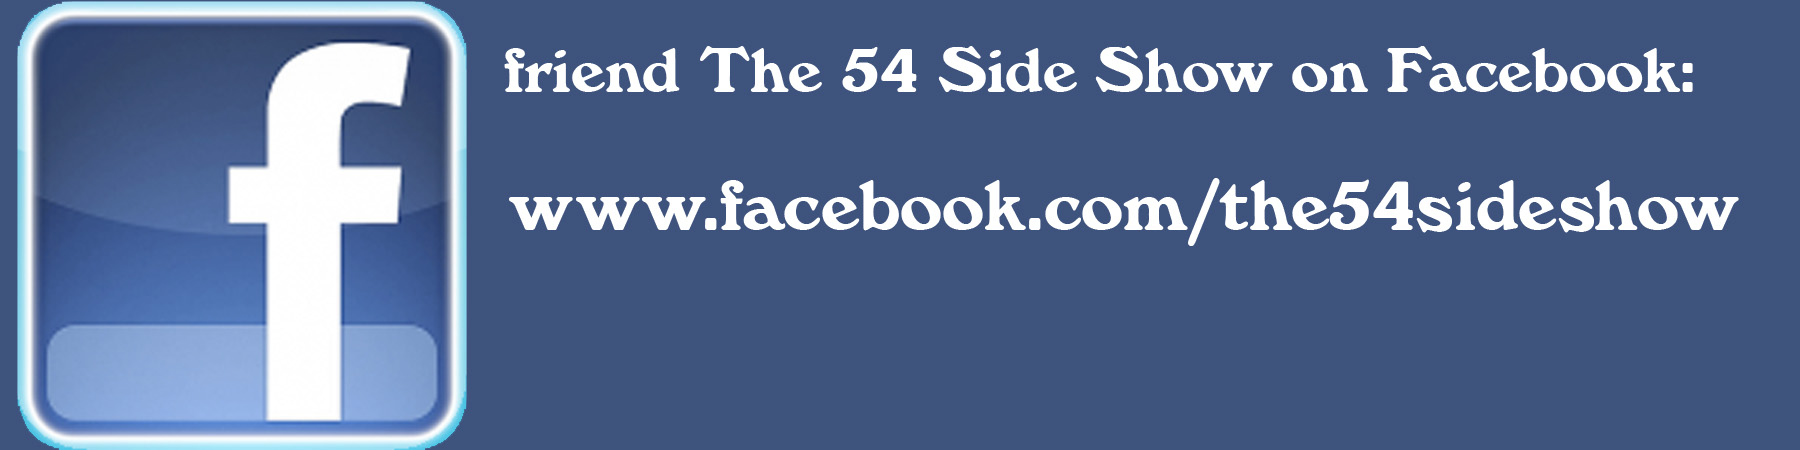 THE 54 SIDE SHOW Facebook